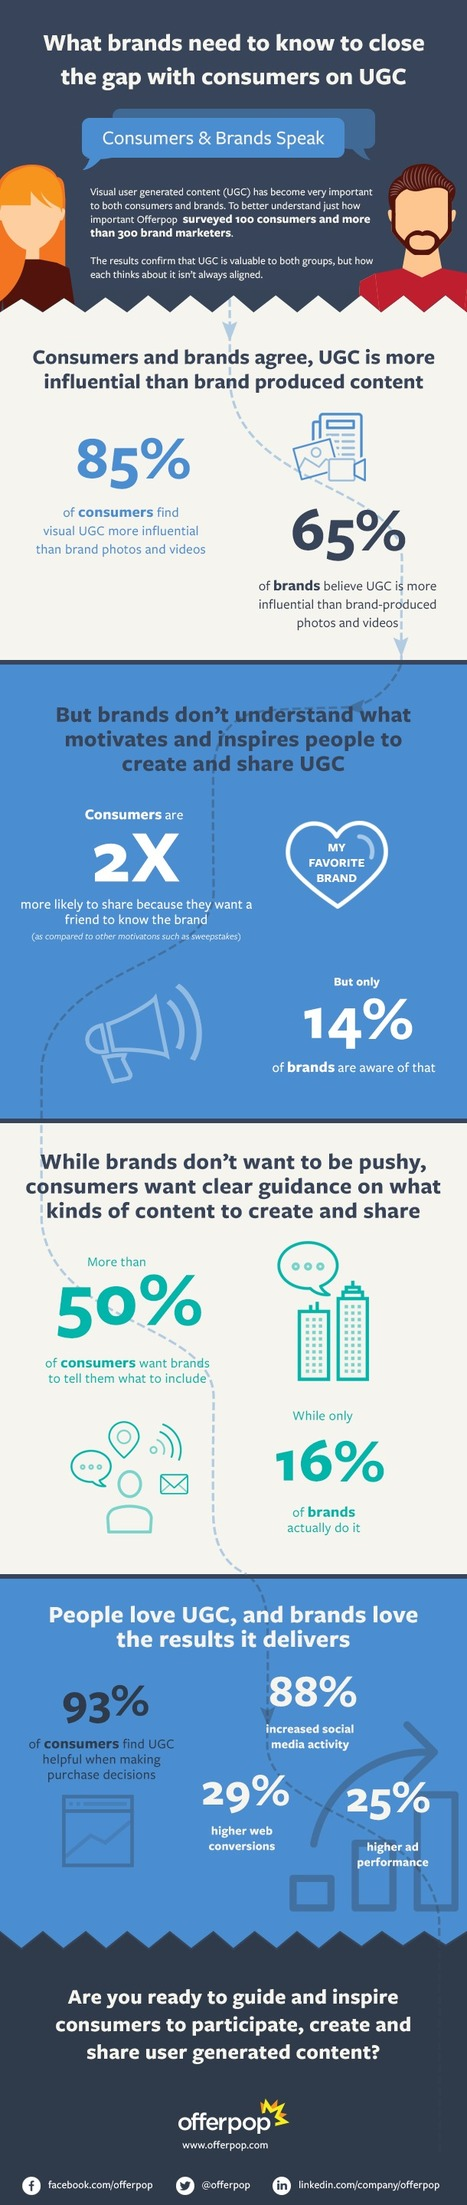 How to Connect with Consumers via User-Generated Content #Infographic | MarketingHits | Scoop.it